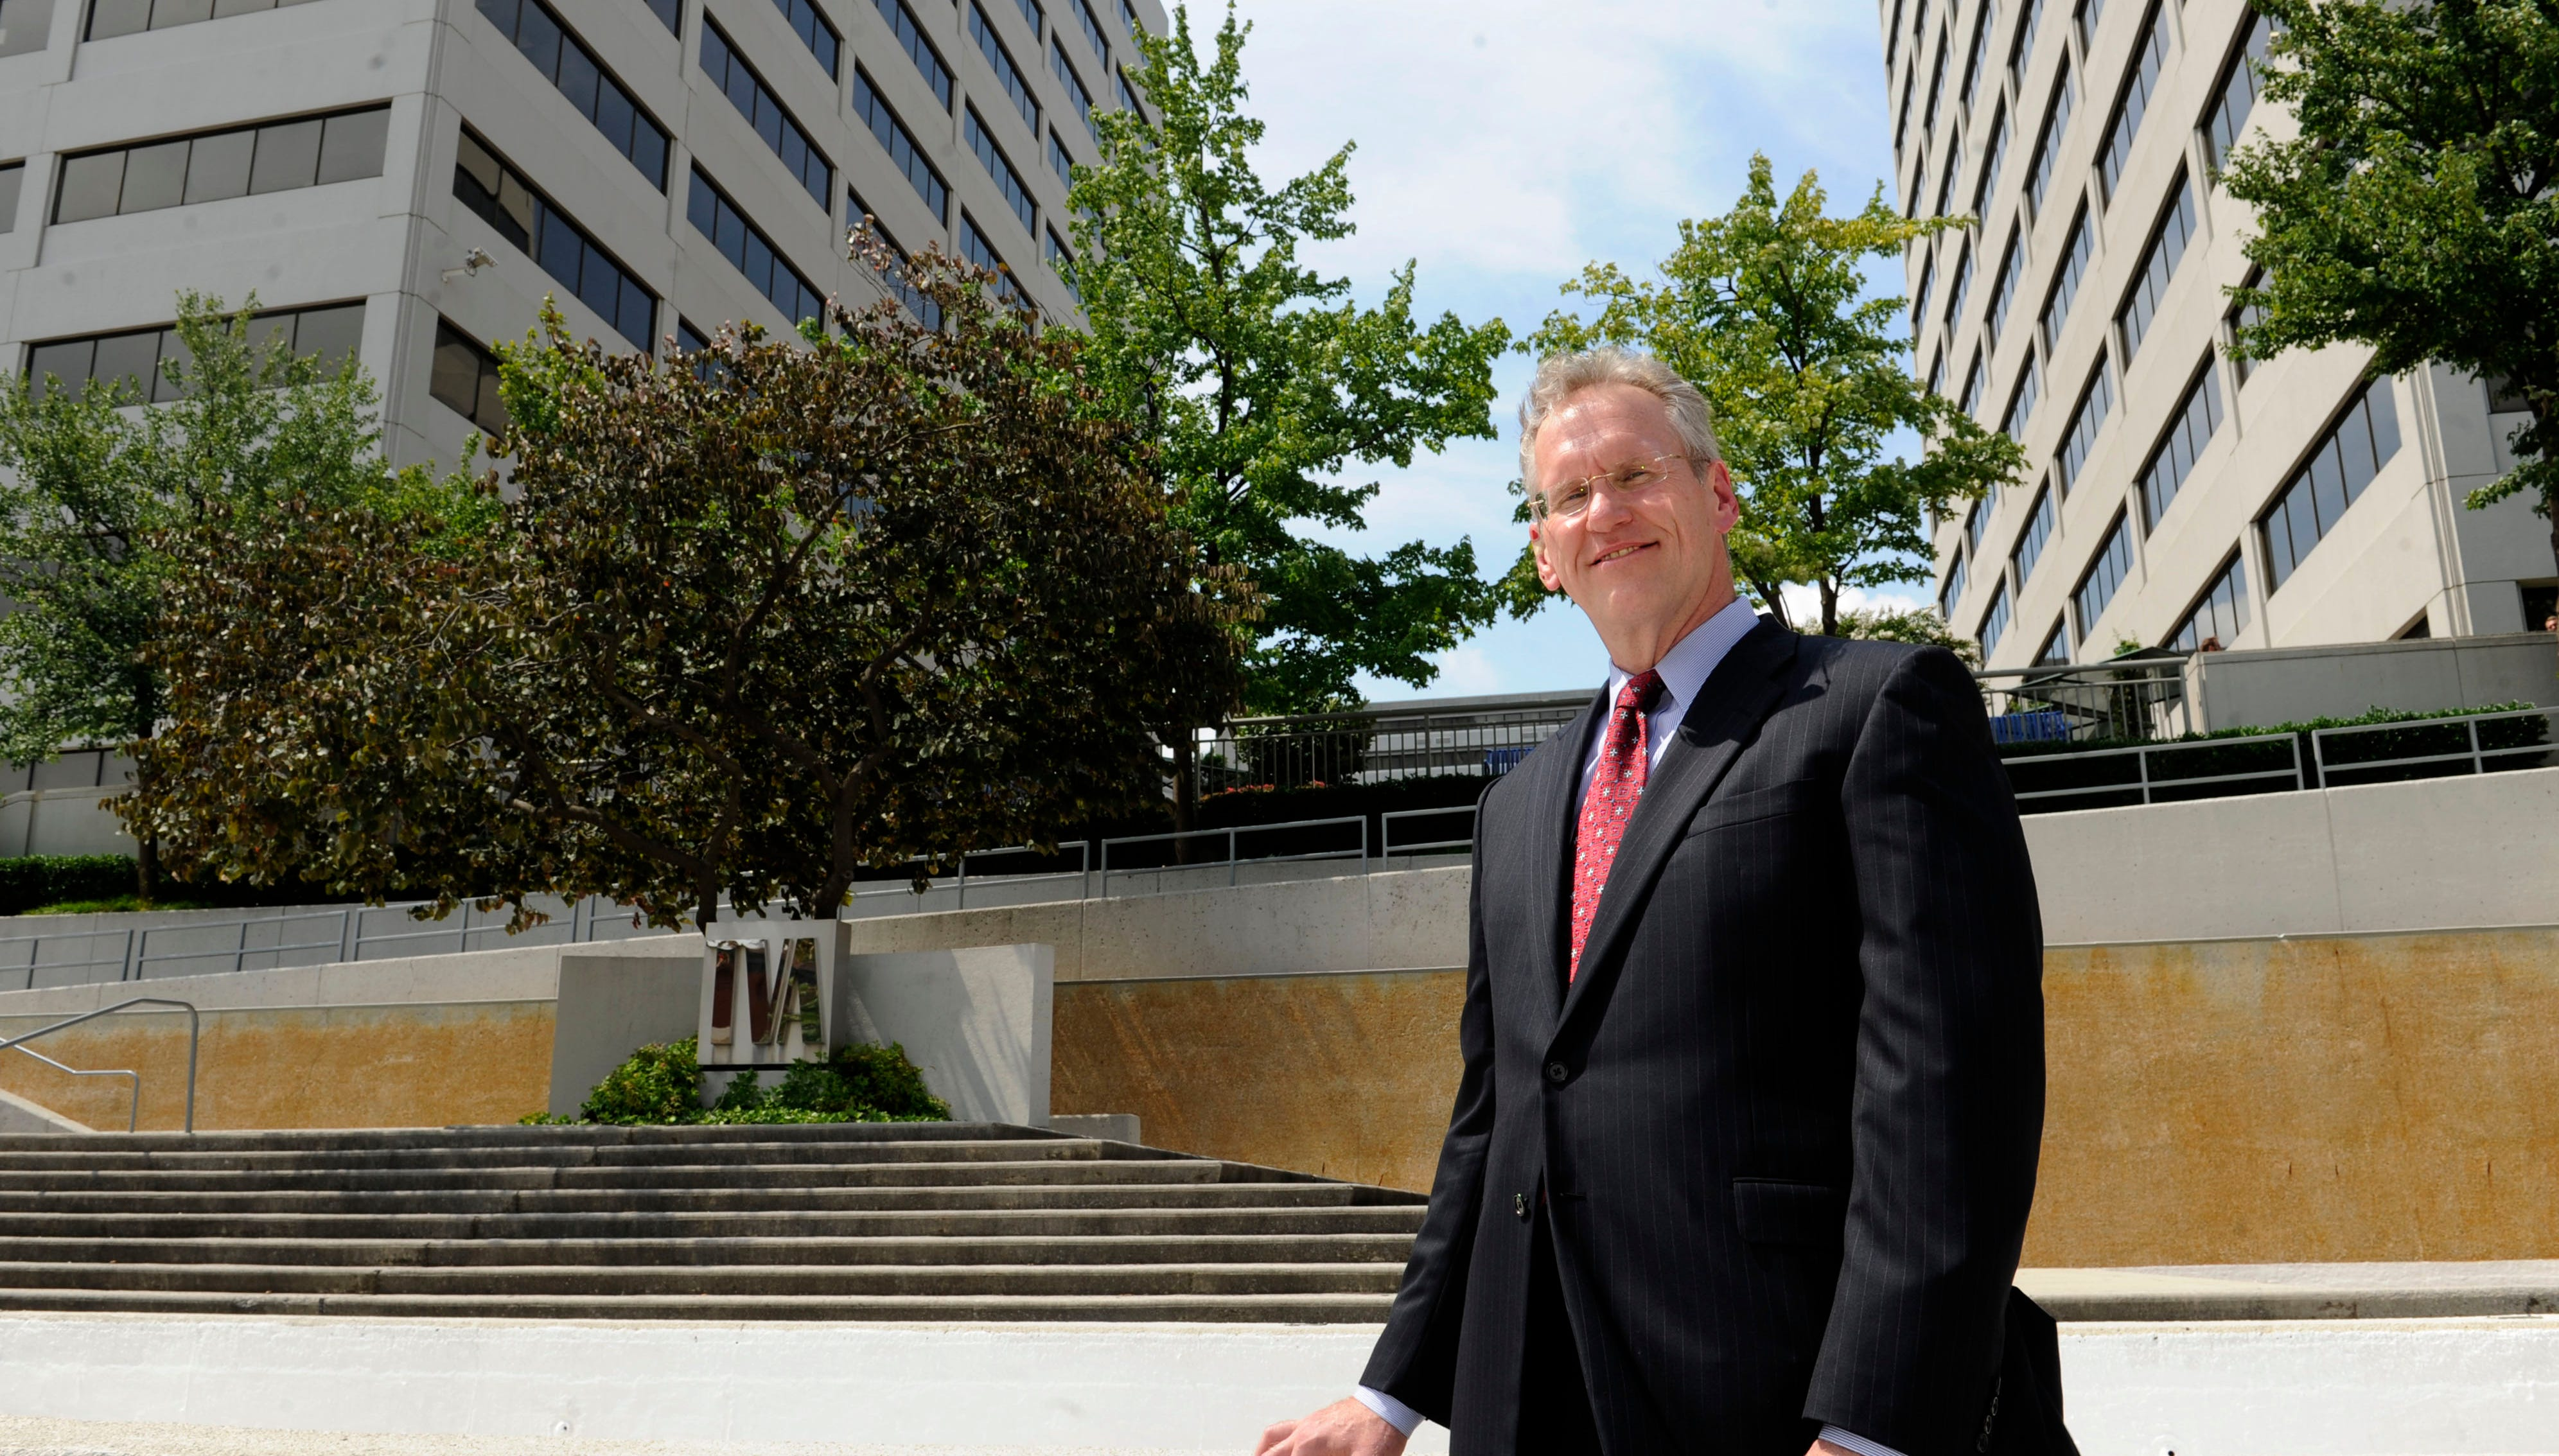 Tennessee Valley Authority CEO Bill Johnson, at the TVA Towers in downtown Knoxville, Tuesday, July 23, 2013.